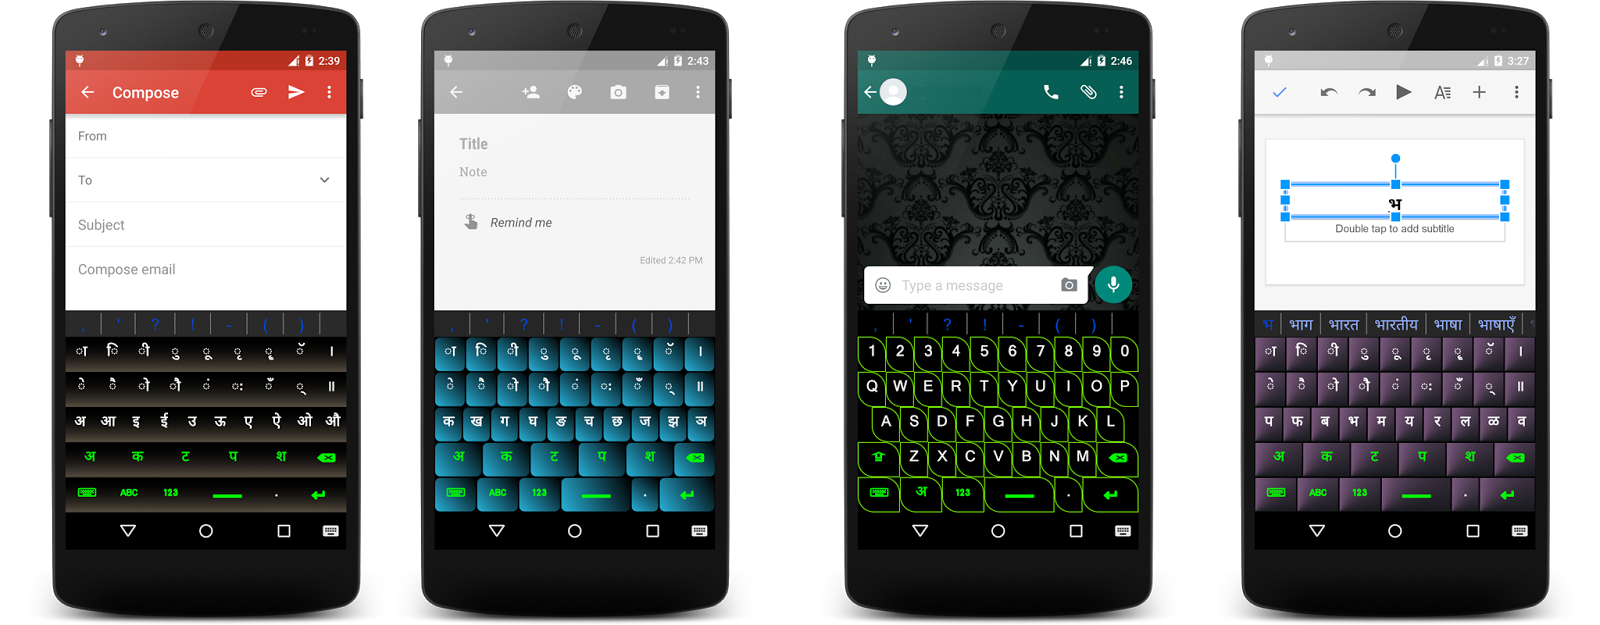 Patternlogics: Hindi Keyboard for Android™